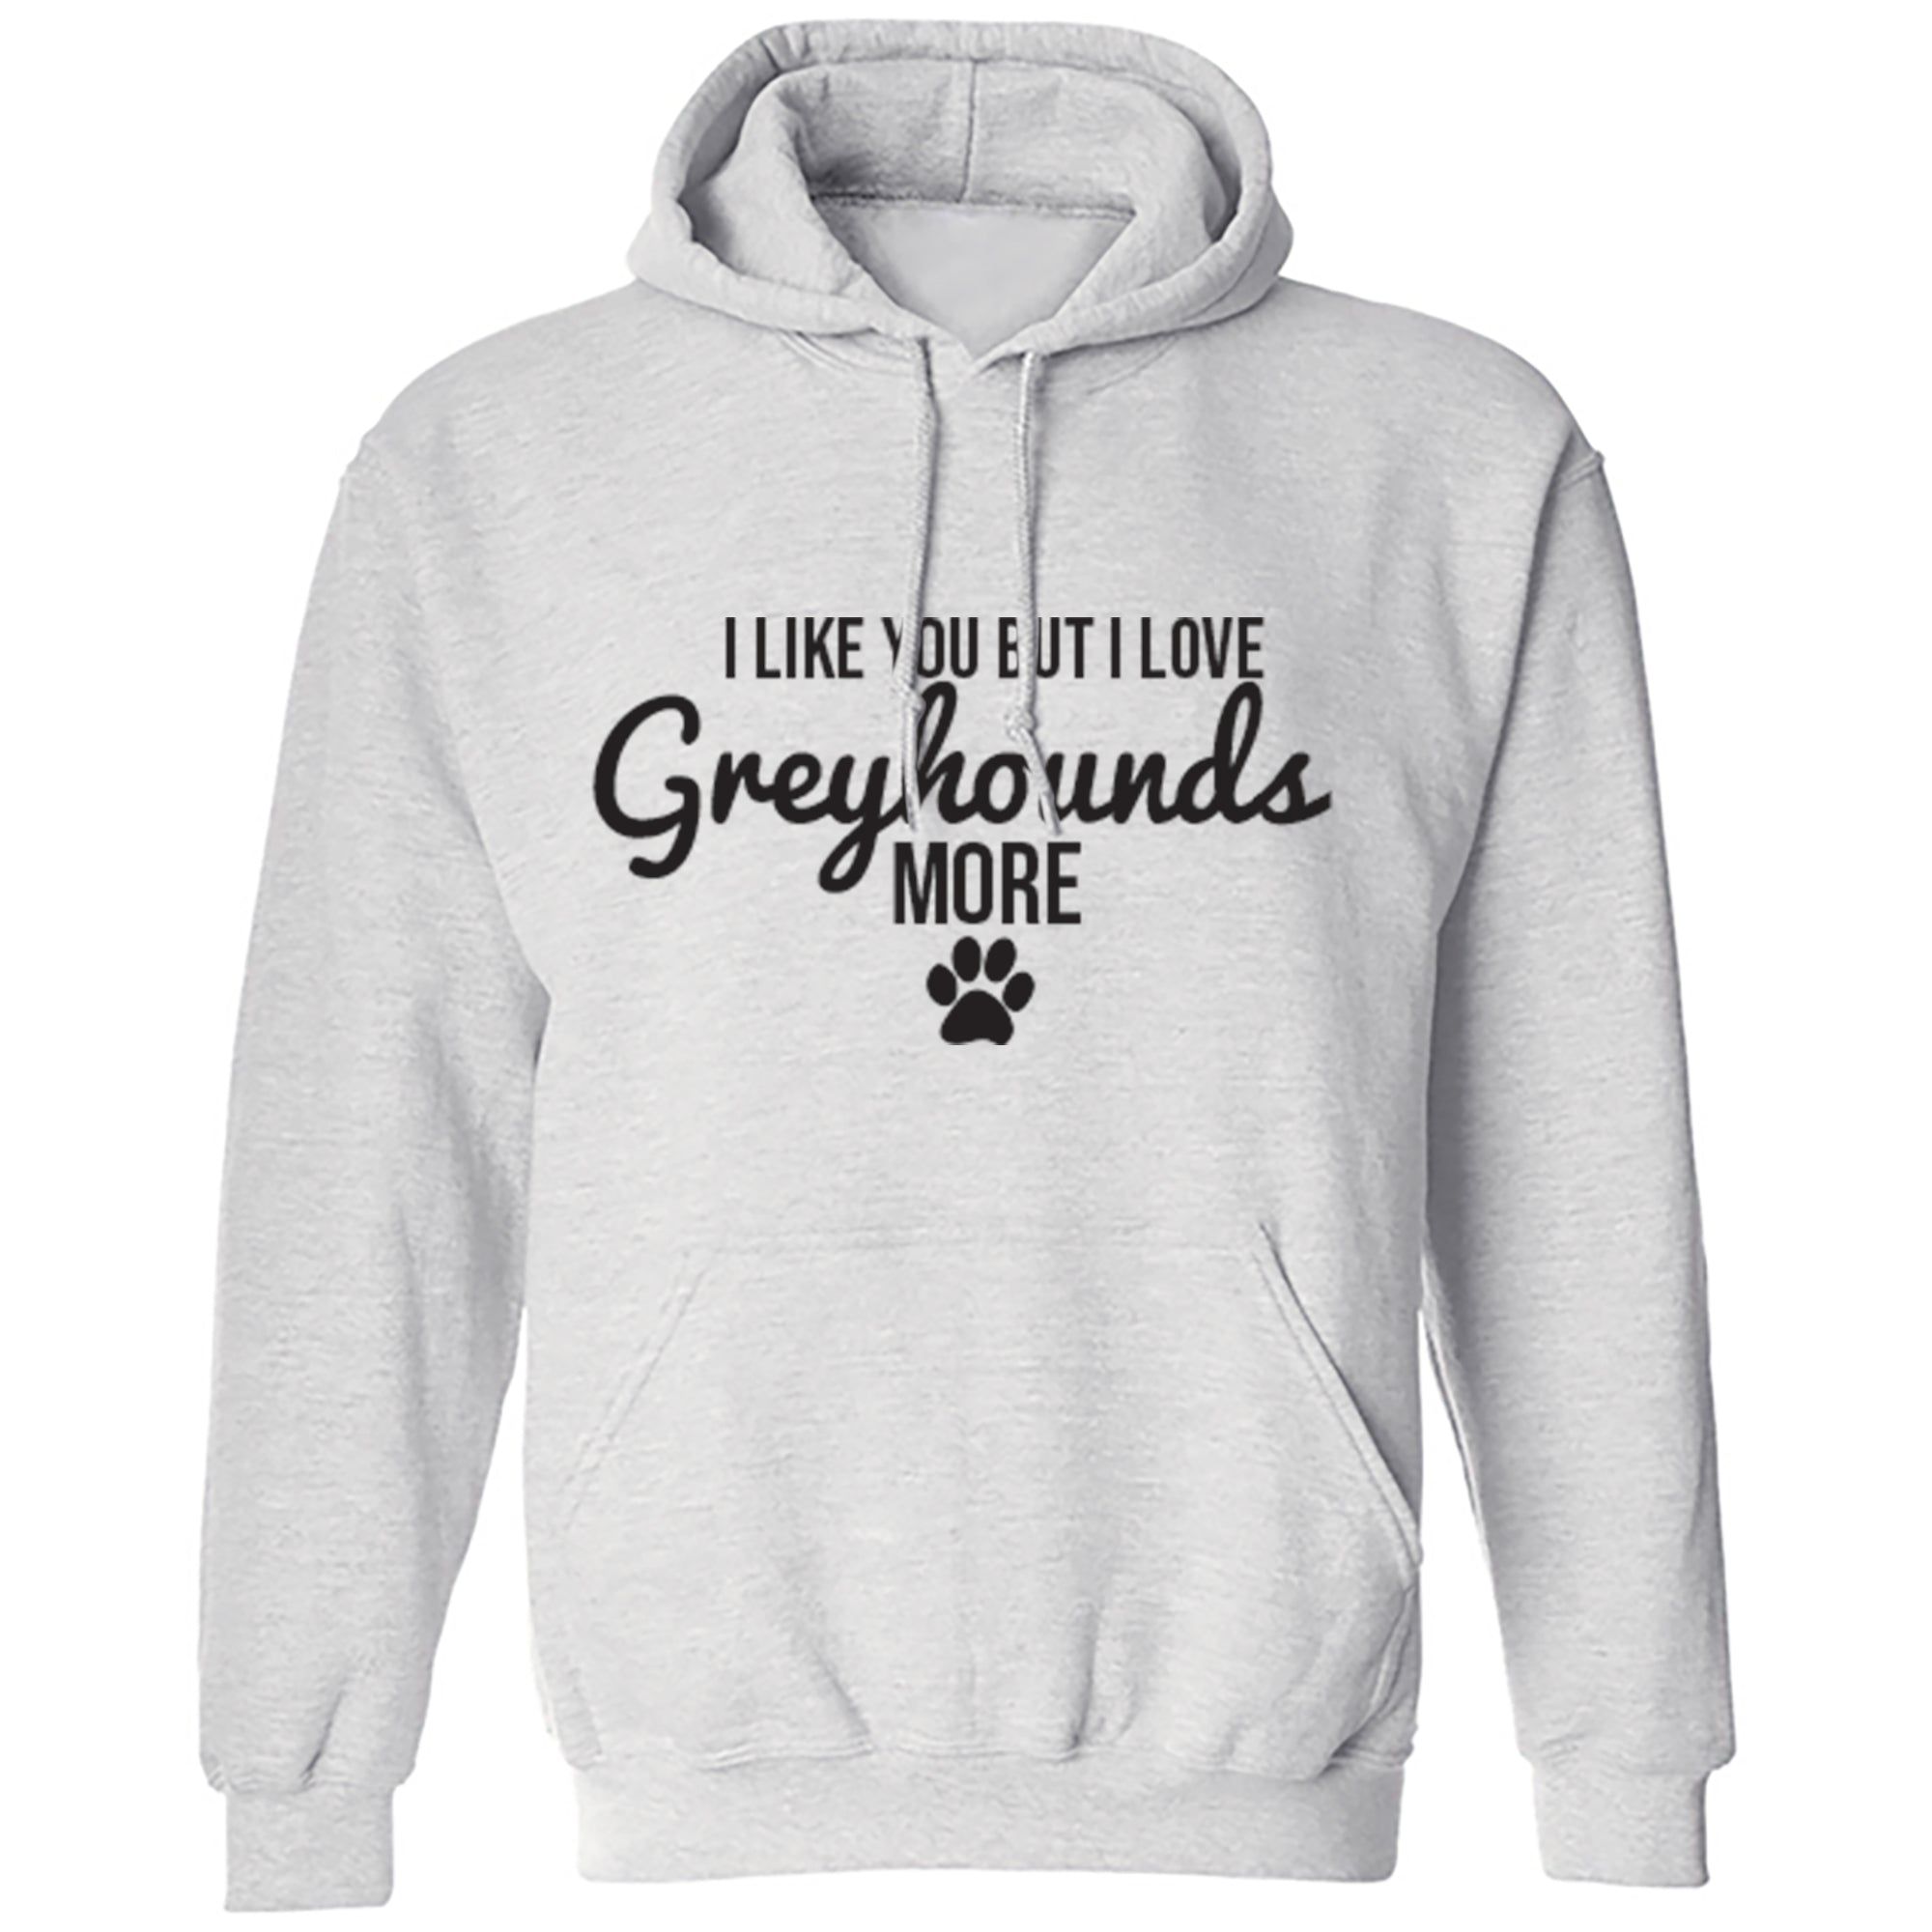 I Like You But I Love Greyhounds More Unisex Hoodie S0110 - Illustrated Identity Ltd.